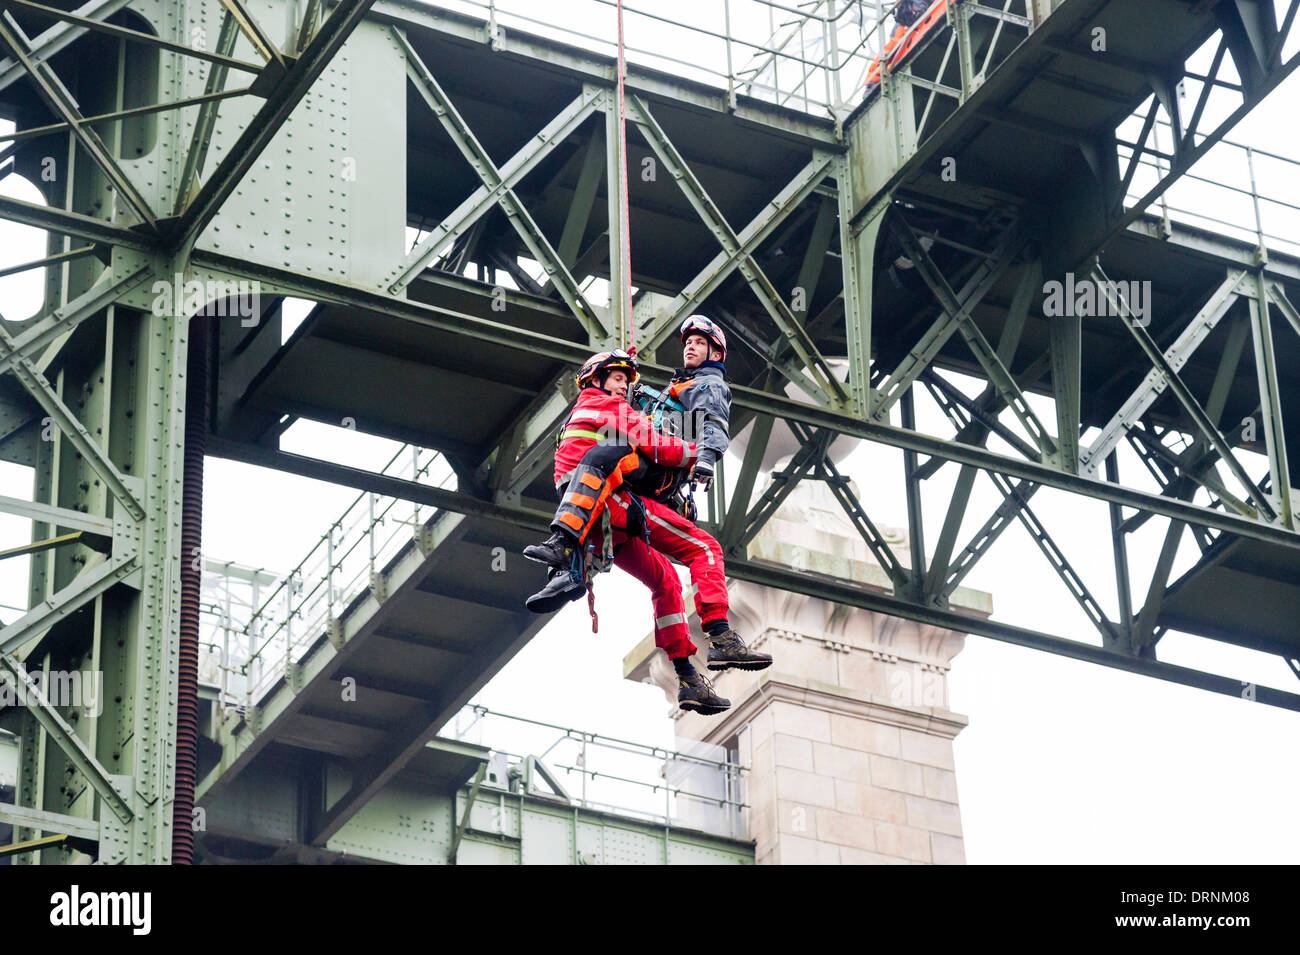 Local fire fighters have a high angle rescue exercise at the old ship canal lift Henrichenburg. - Stock Image